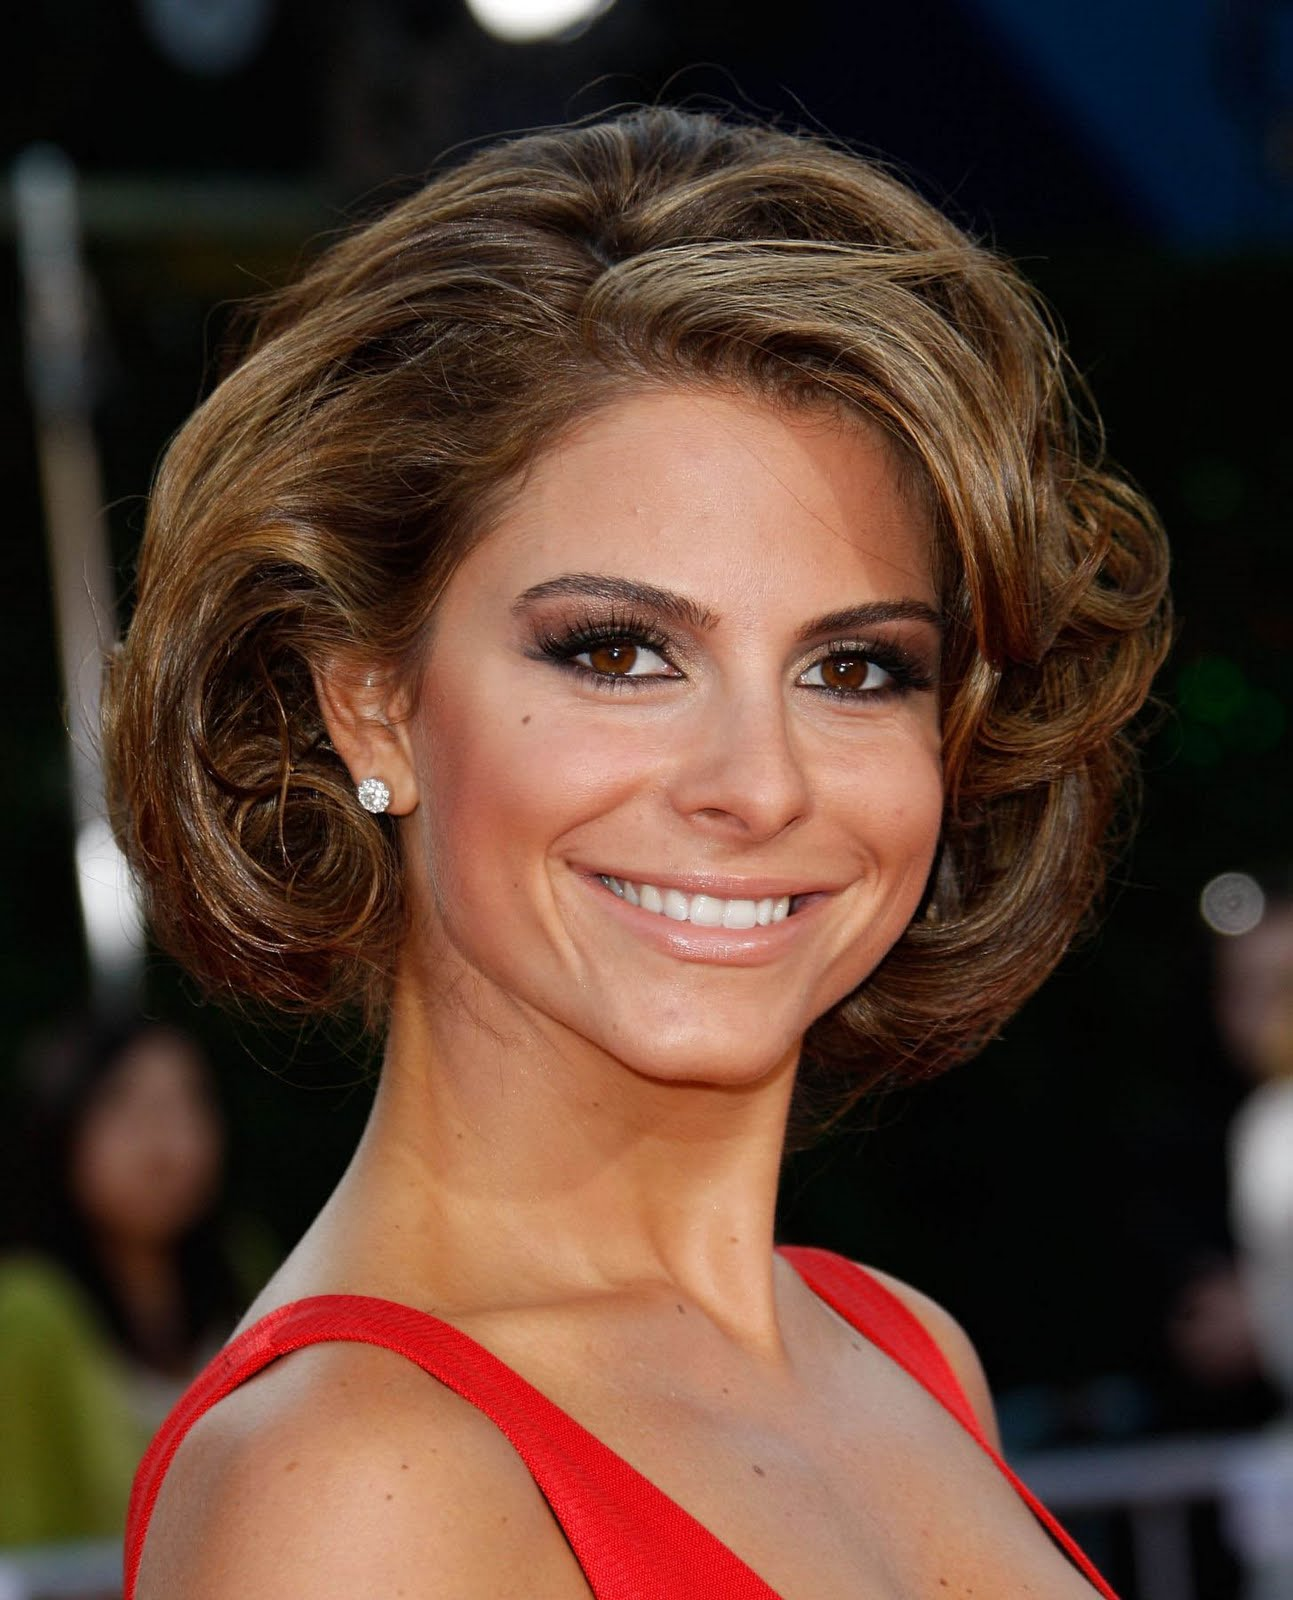 Maria Menounos - Wallpaper